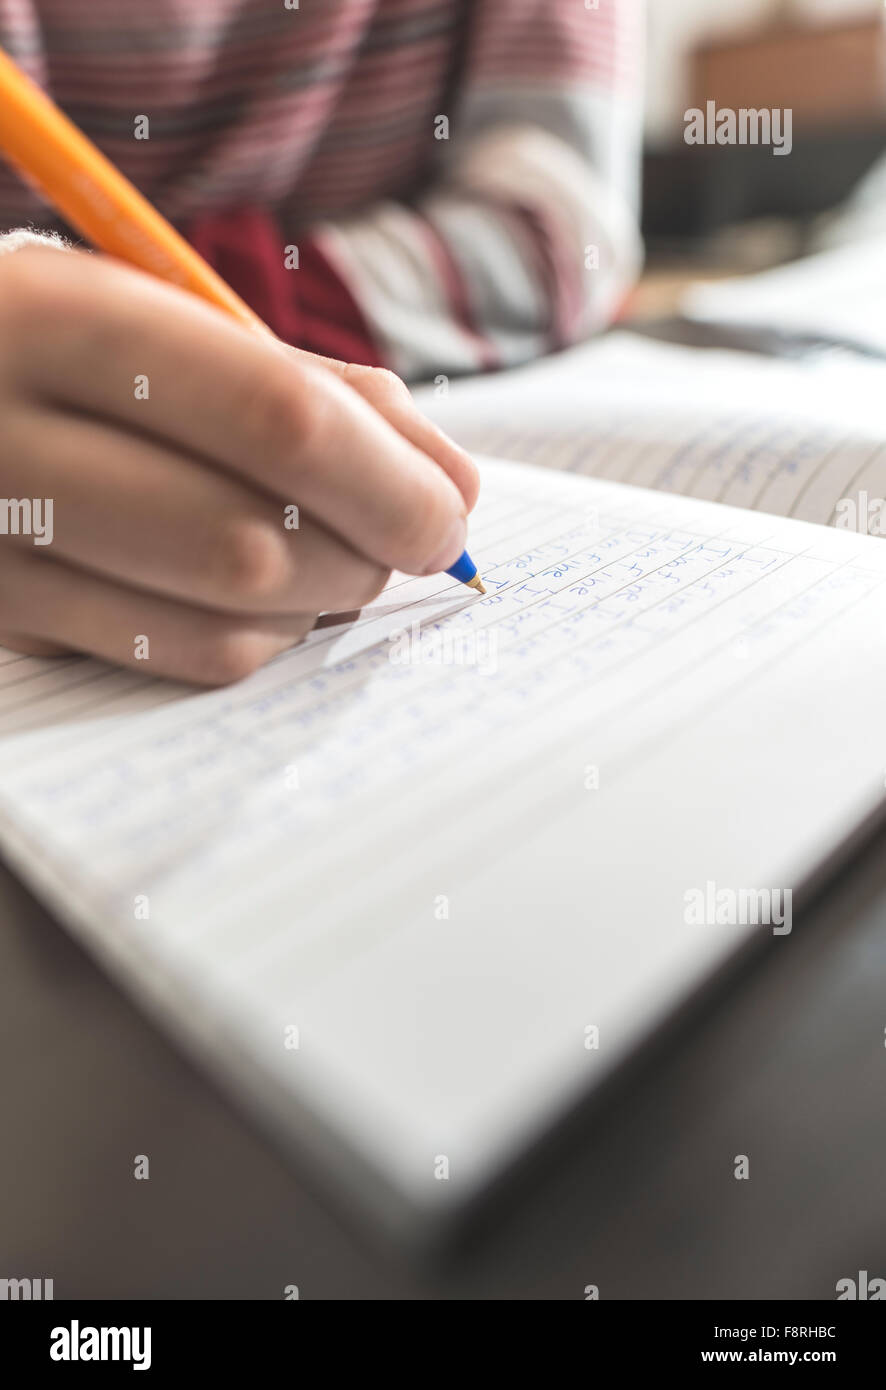 Boy writing in a notebook - Stock Image